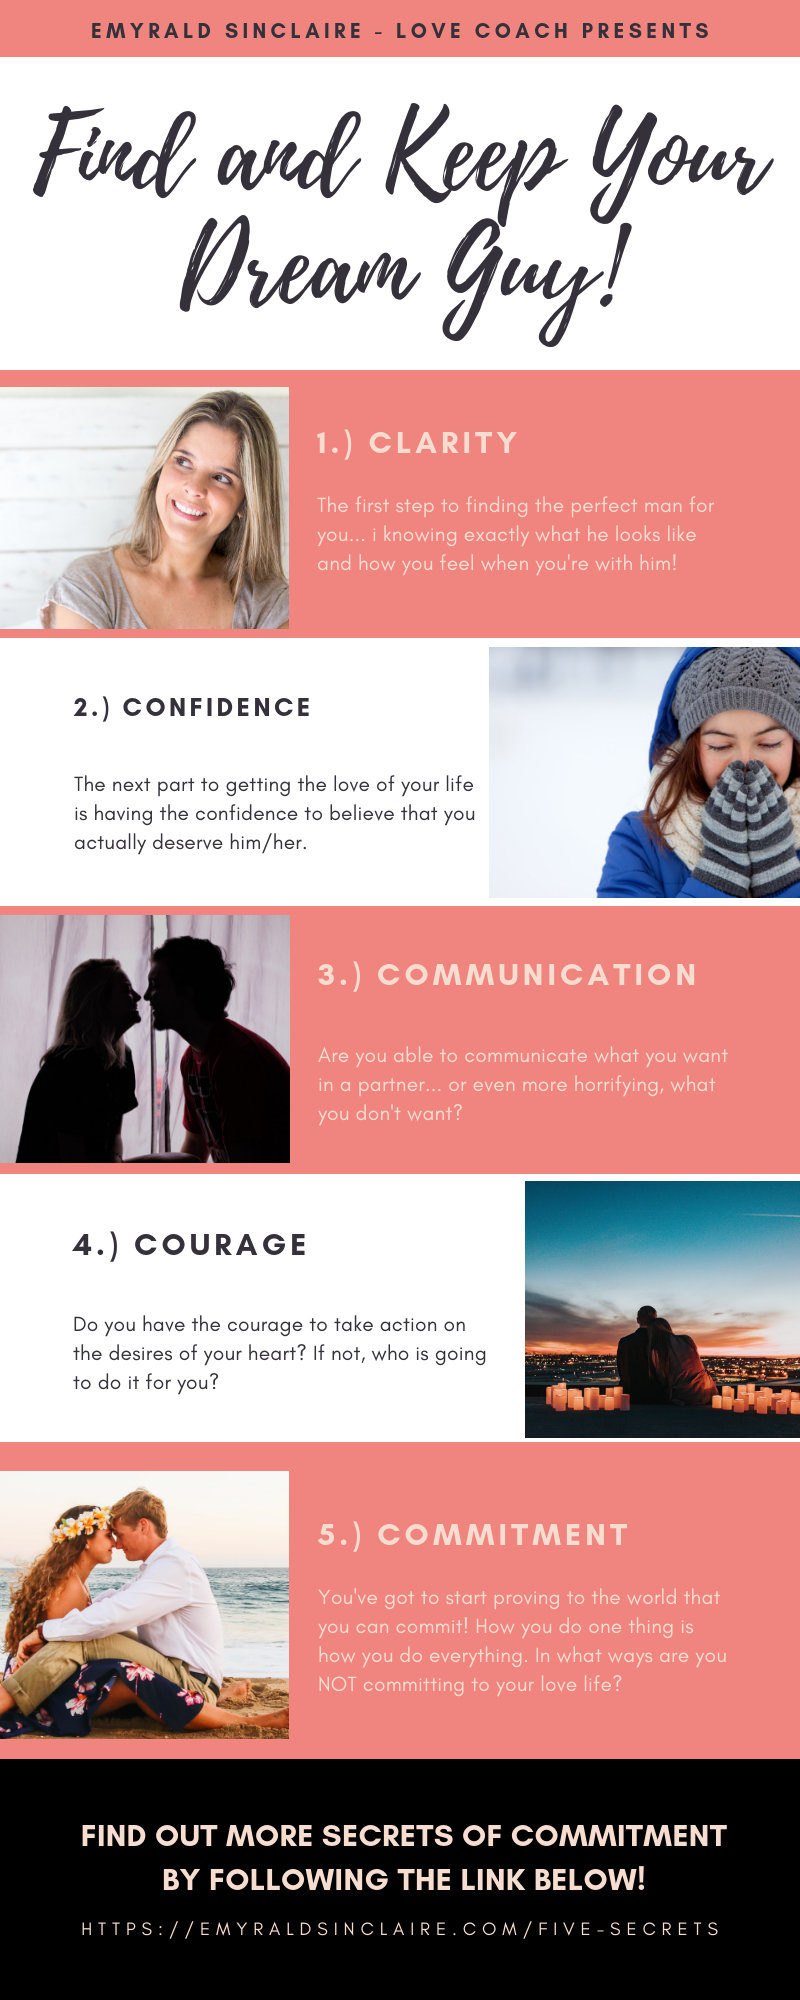 Courage life dating